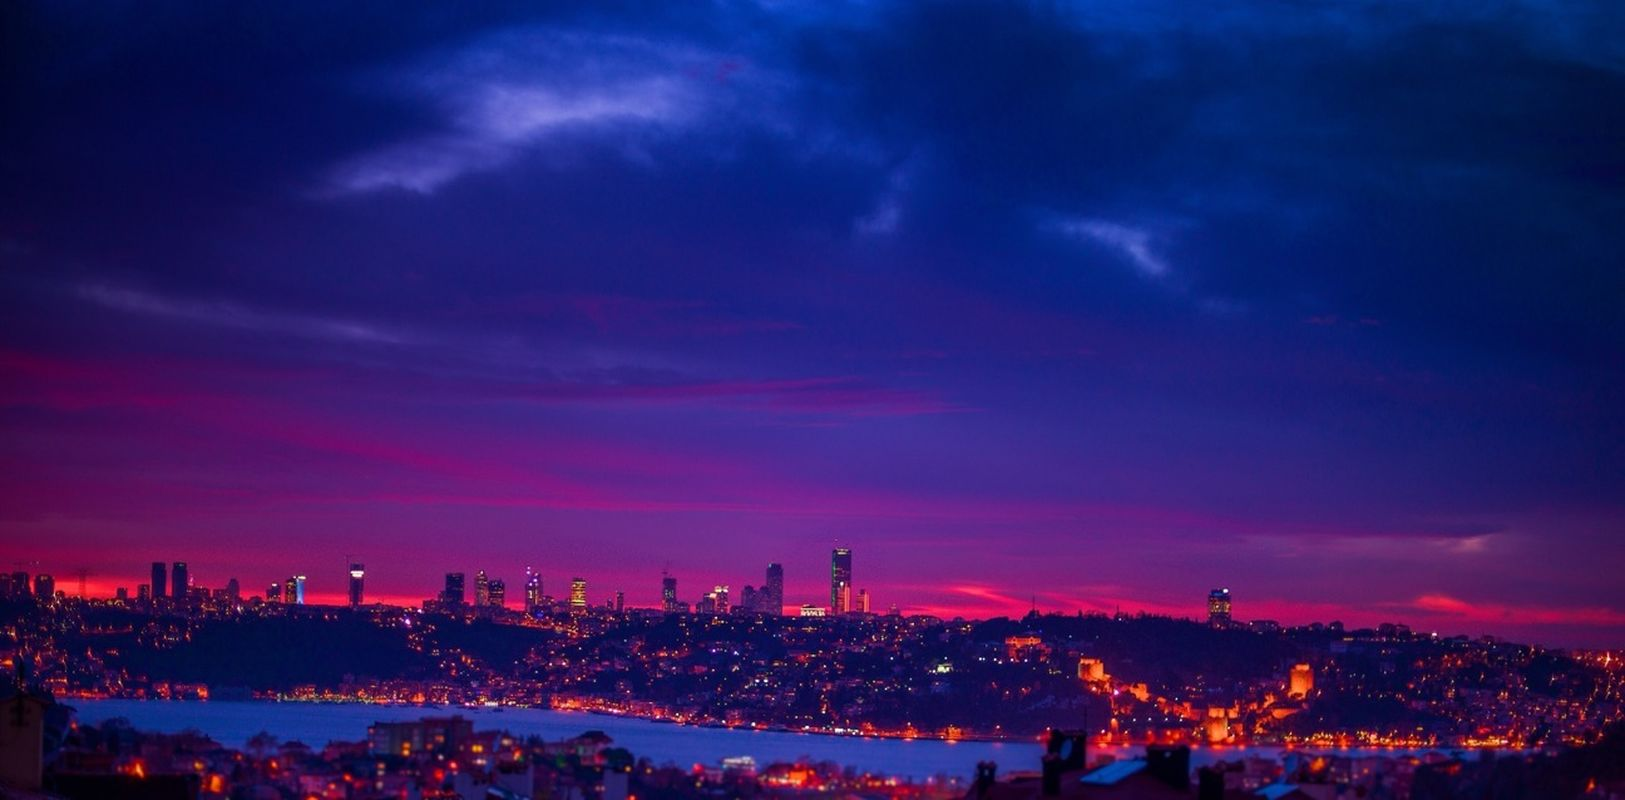 Hello world Great atmosphere instagram #sunset #sun #clouds #skylovers #sky #nature #beautifulinnature #naturalbeauty #photography #landscape eye4photography  bisgen Relaxing instagood sunset landscape Taking Photos blue Night Lights Red clouds and sky Istanbul popular by Ersin Bisgen